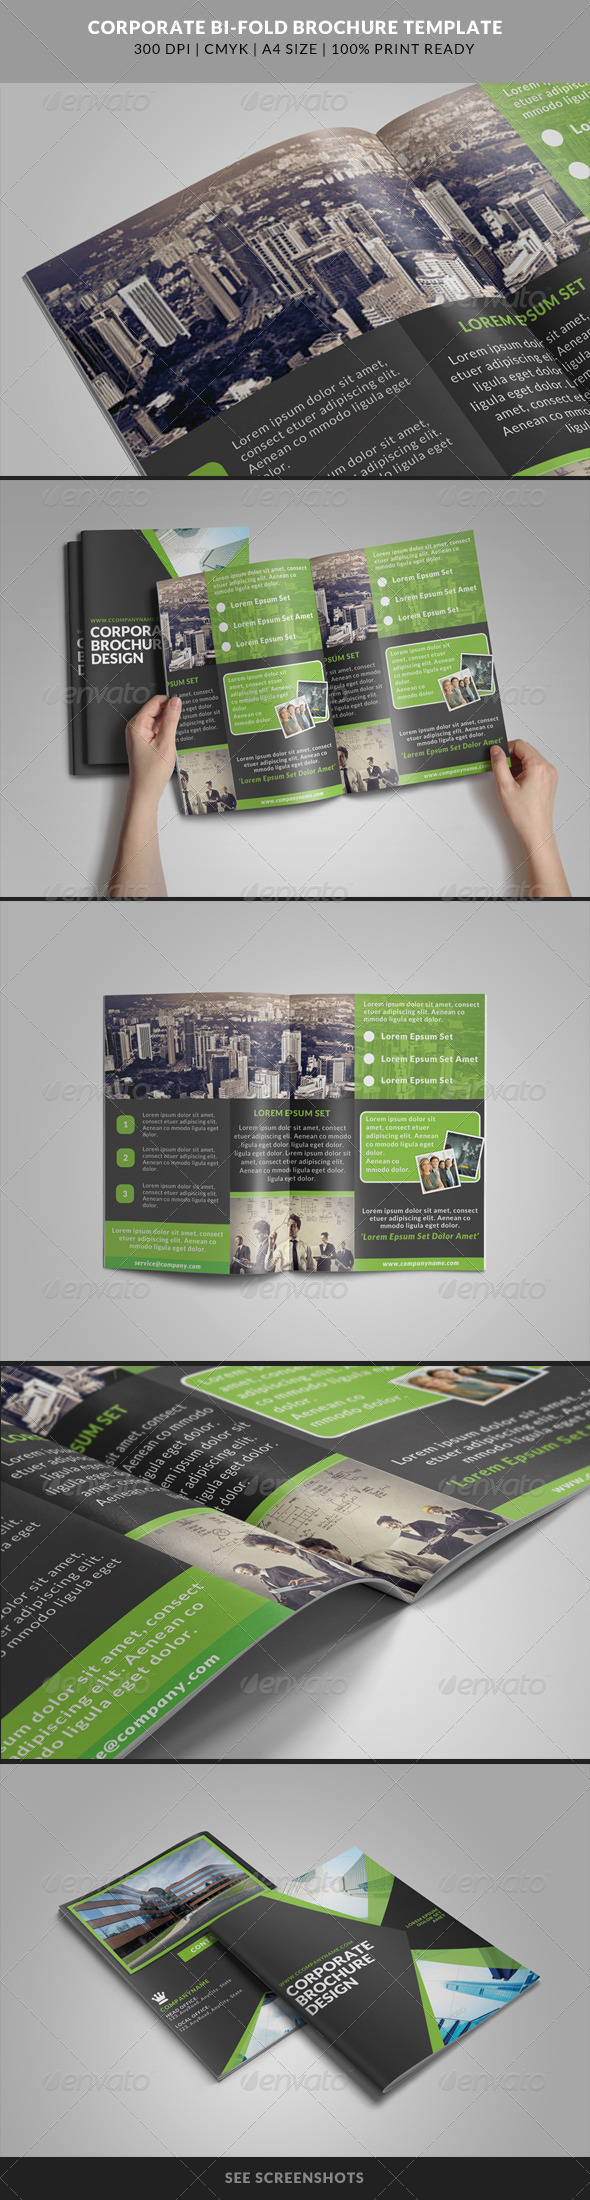 GraphicRiver Corporate Bi-Fold Brochures Template 4 8219574